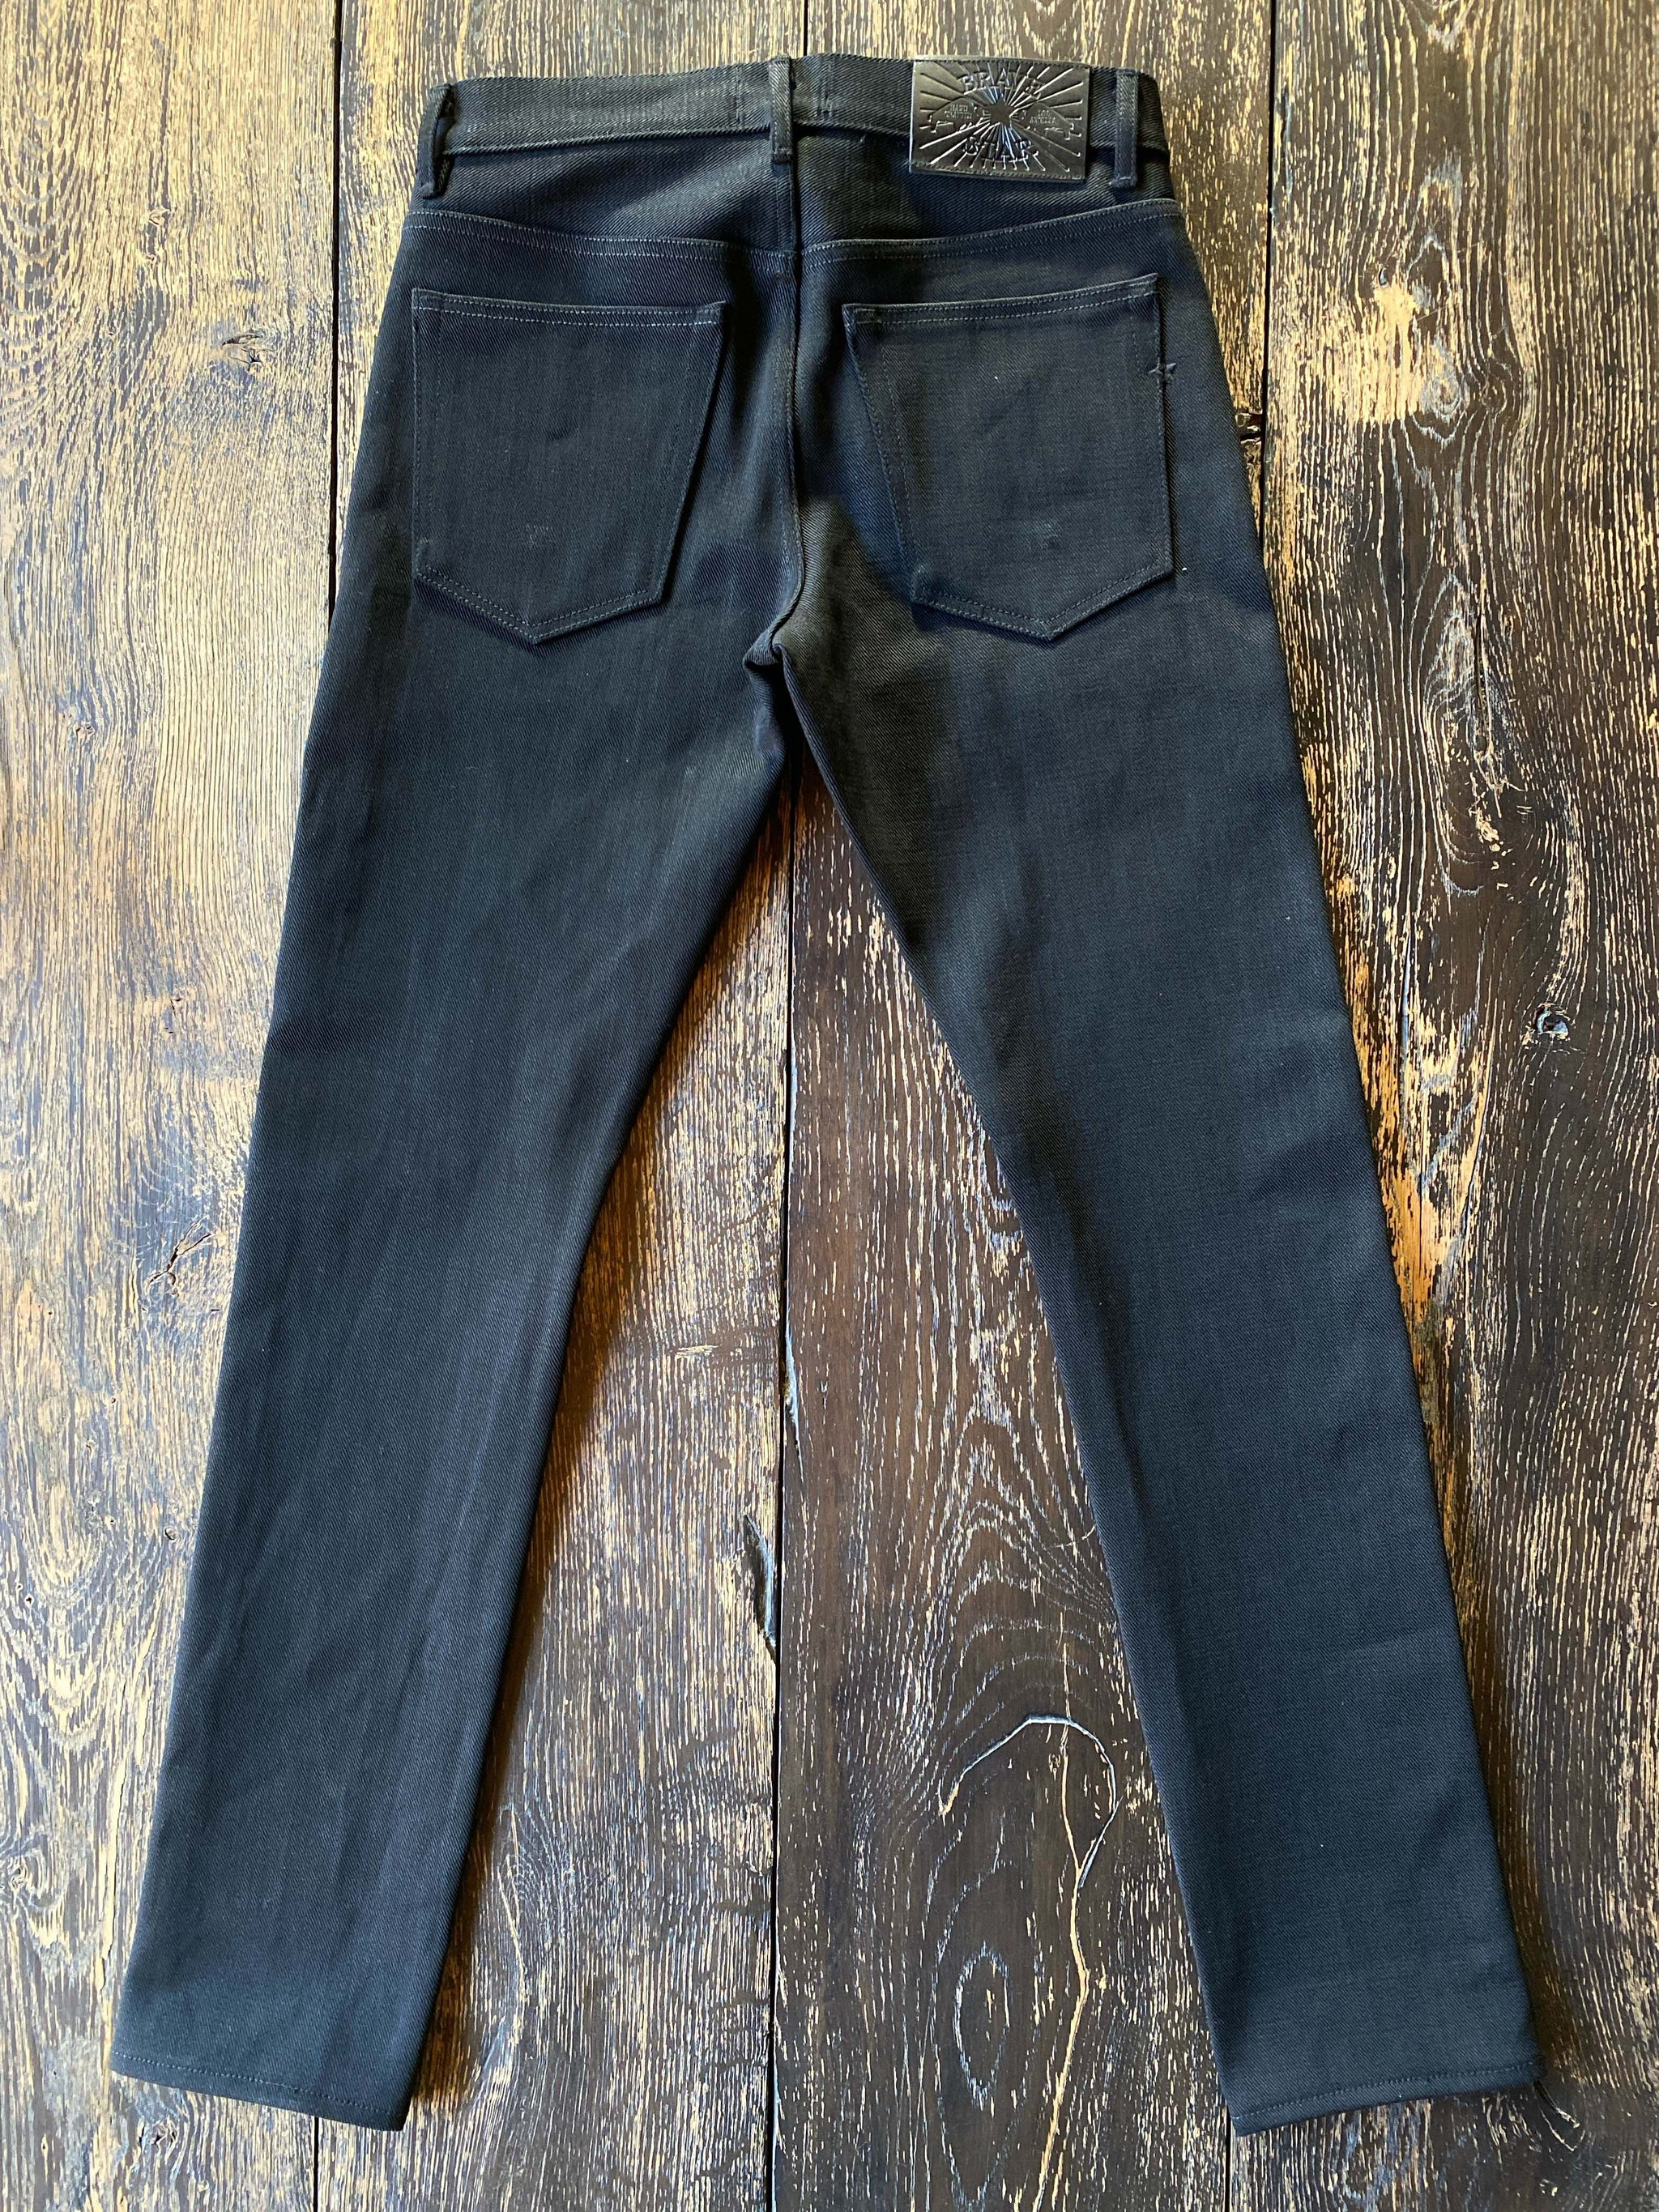 The Regular Taper 21.5oz Heavyweight Double Black Selvage Denim